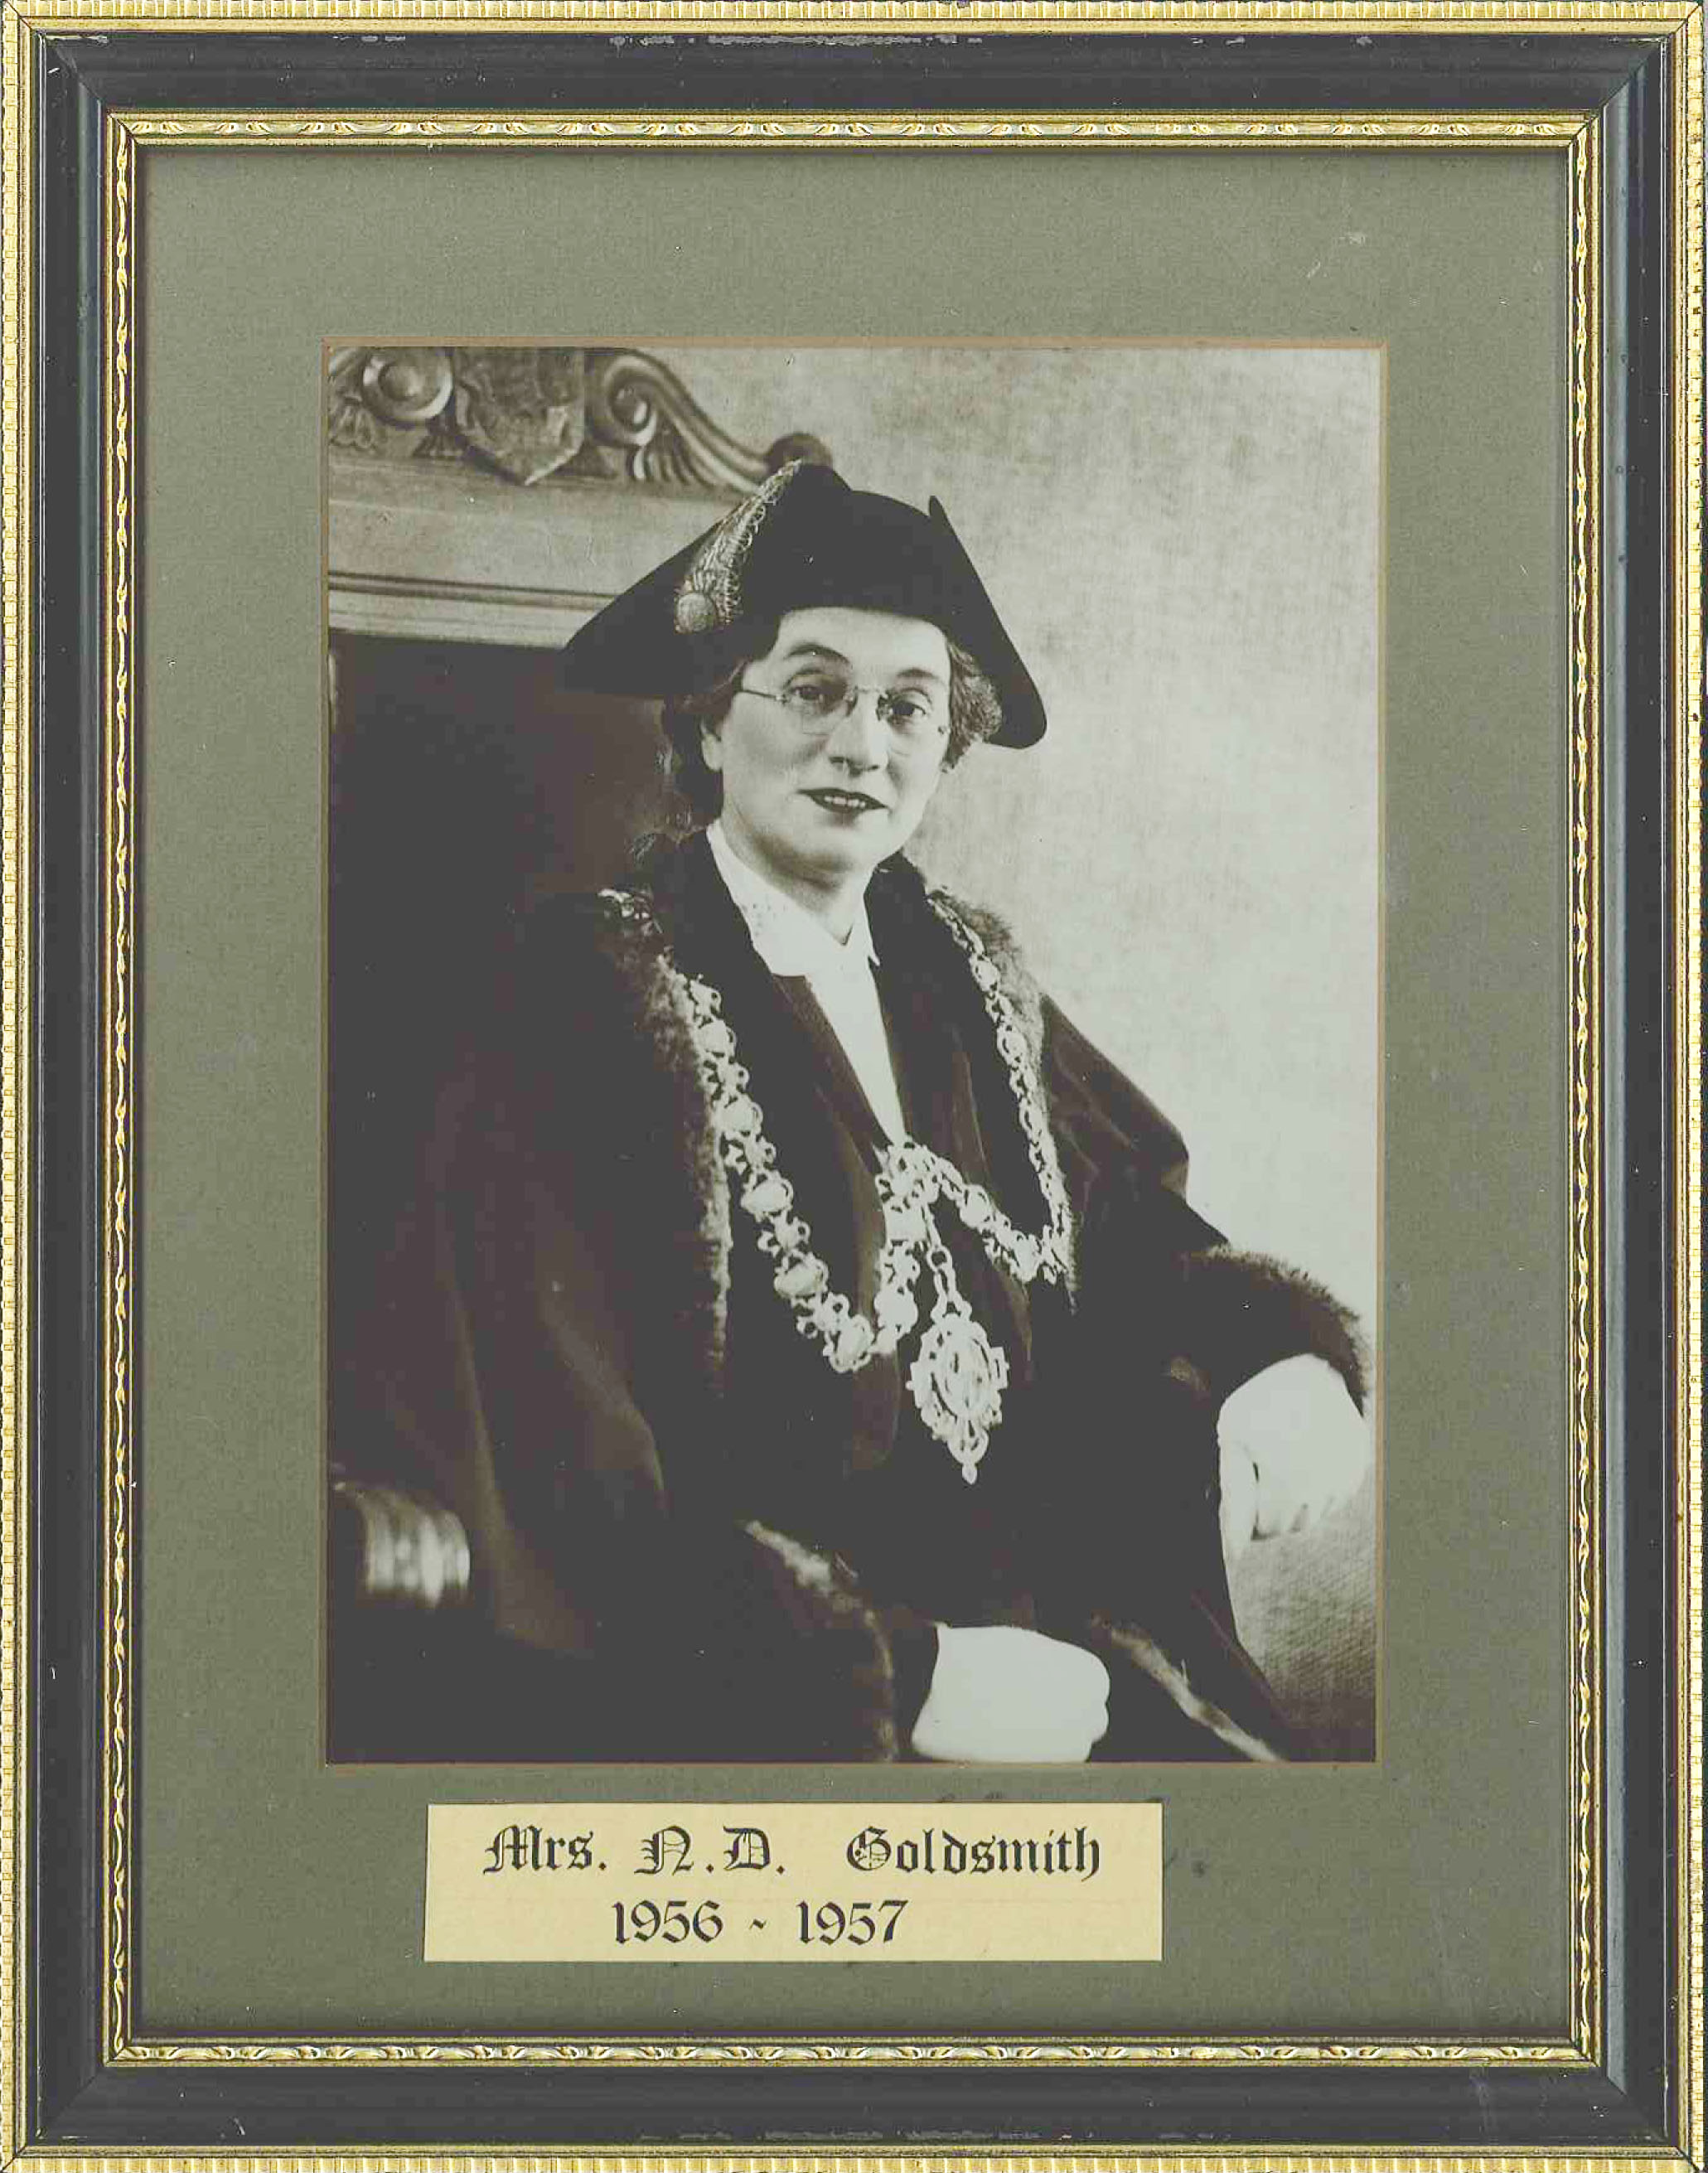 Image of /N.D. Goldsmith (Mrs.)